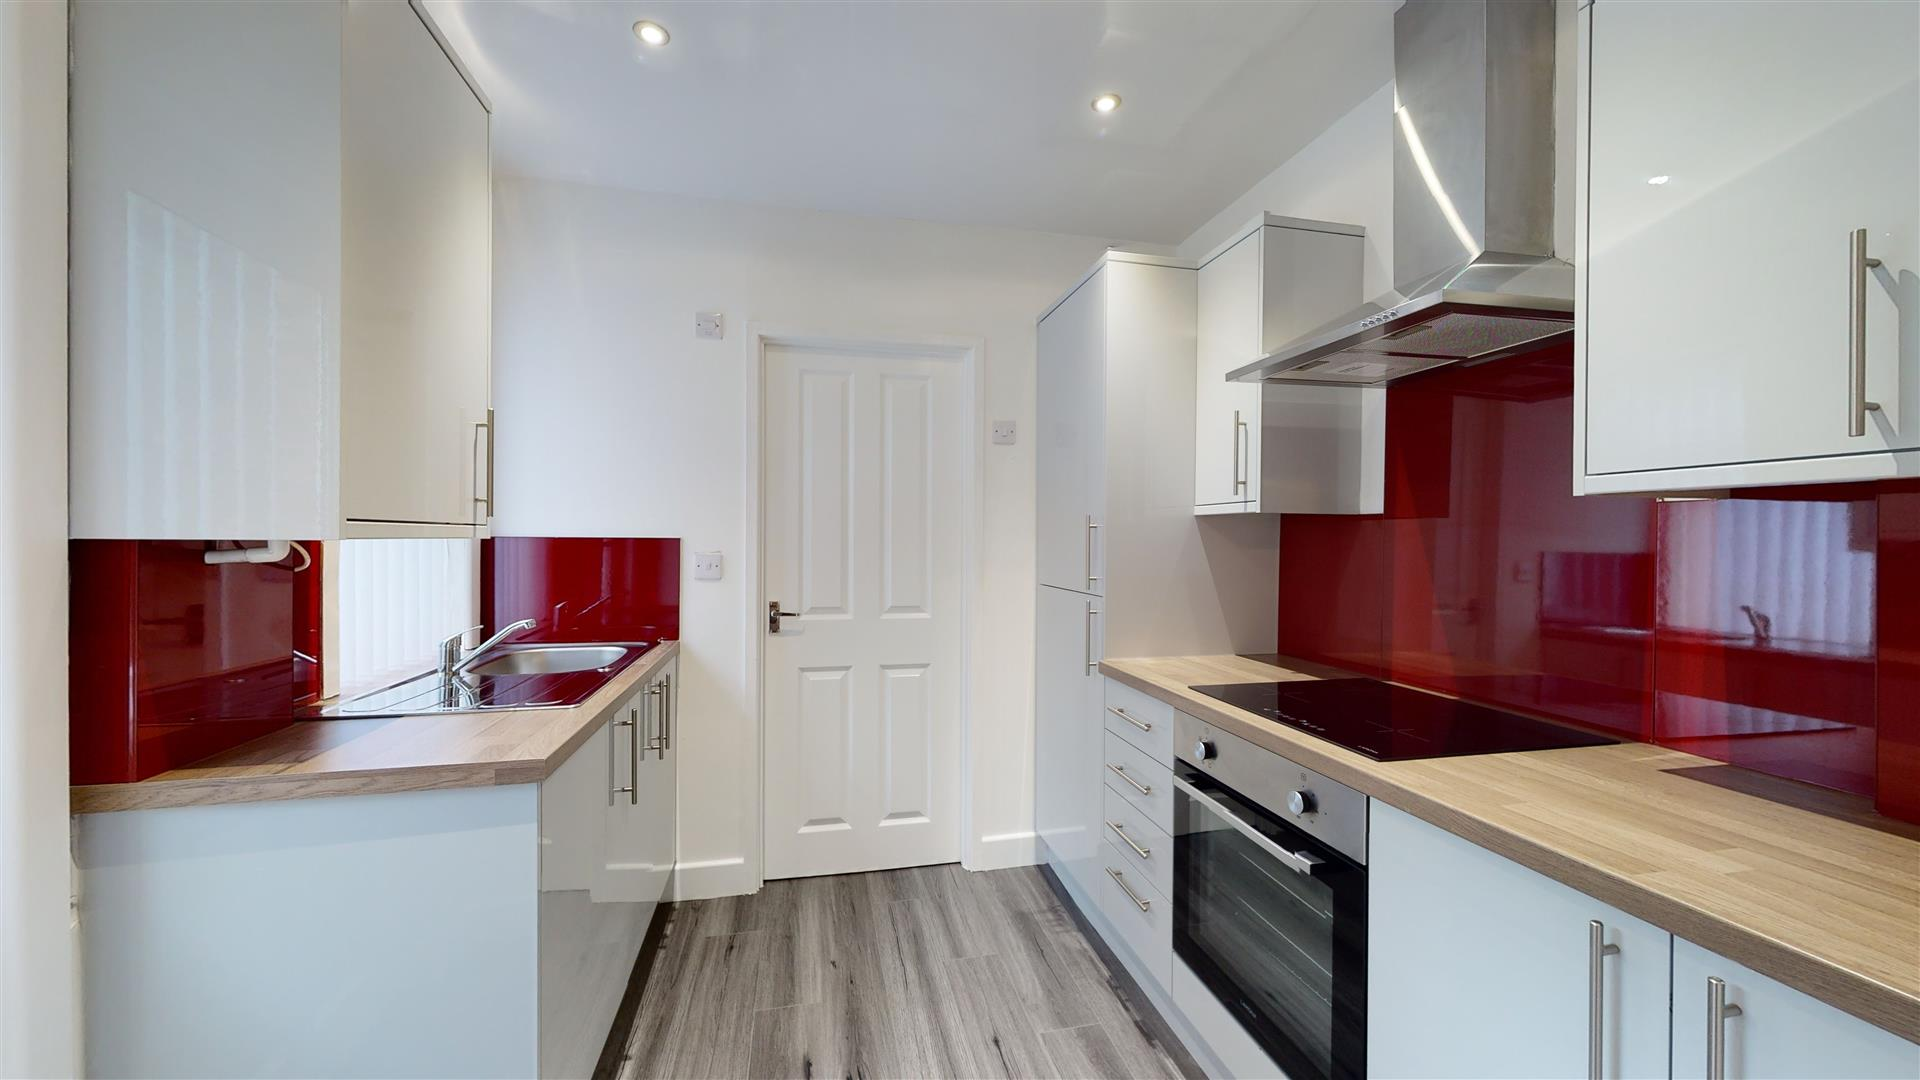 2 bed flat to rent in Newcastle Upon Tyne, NE6 5SJ  - Property Image 1